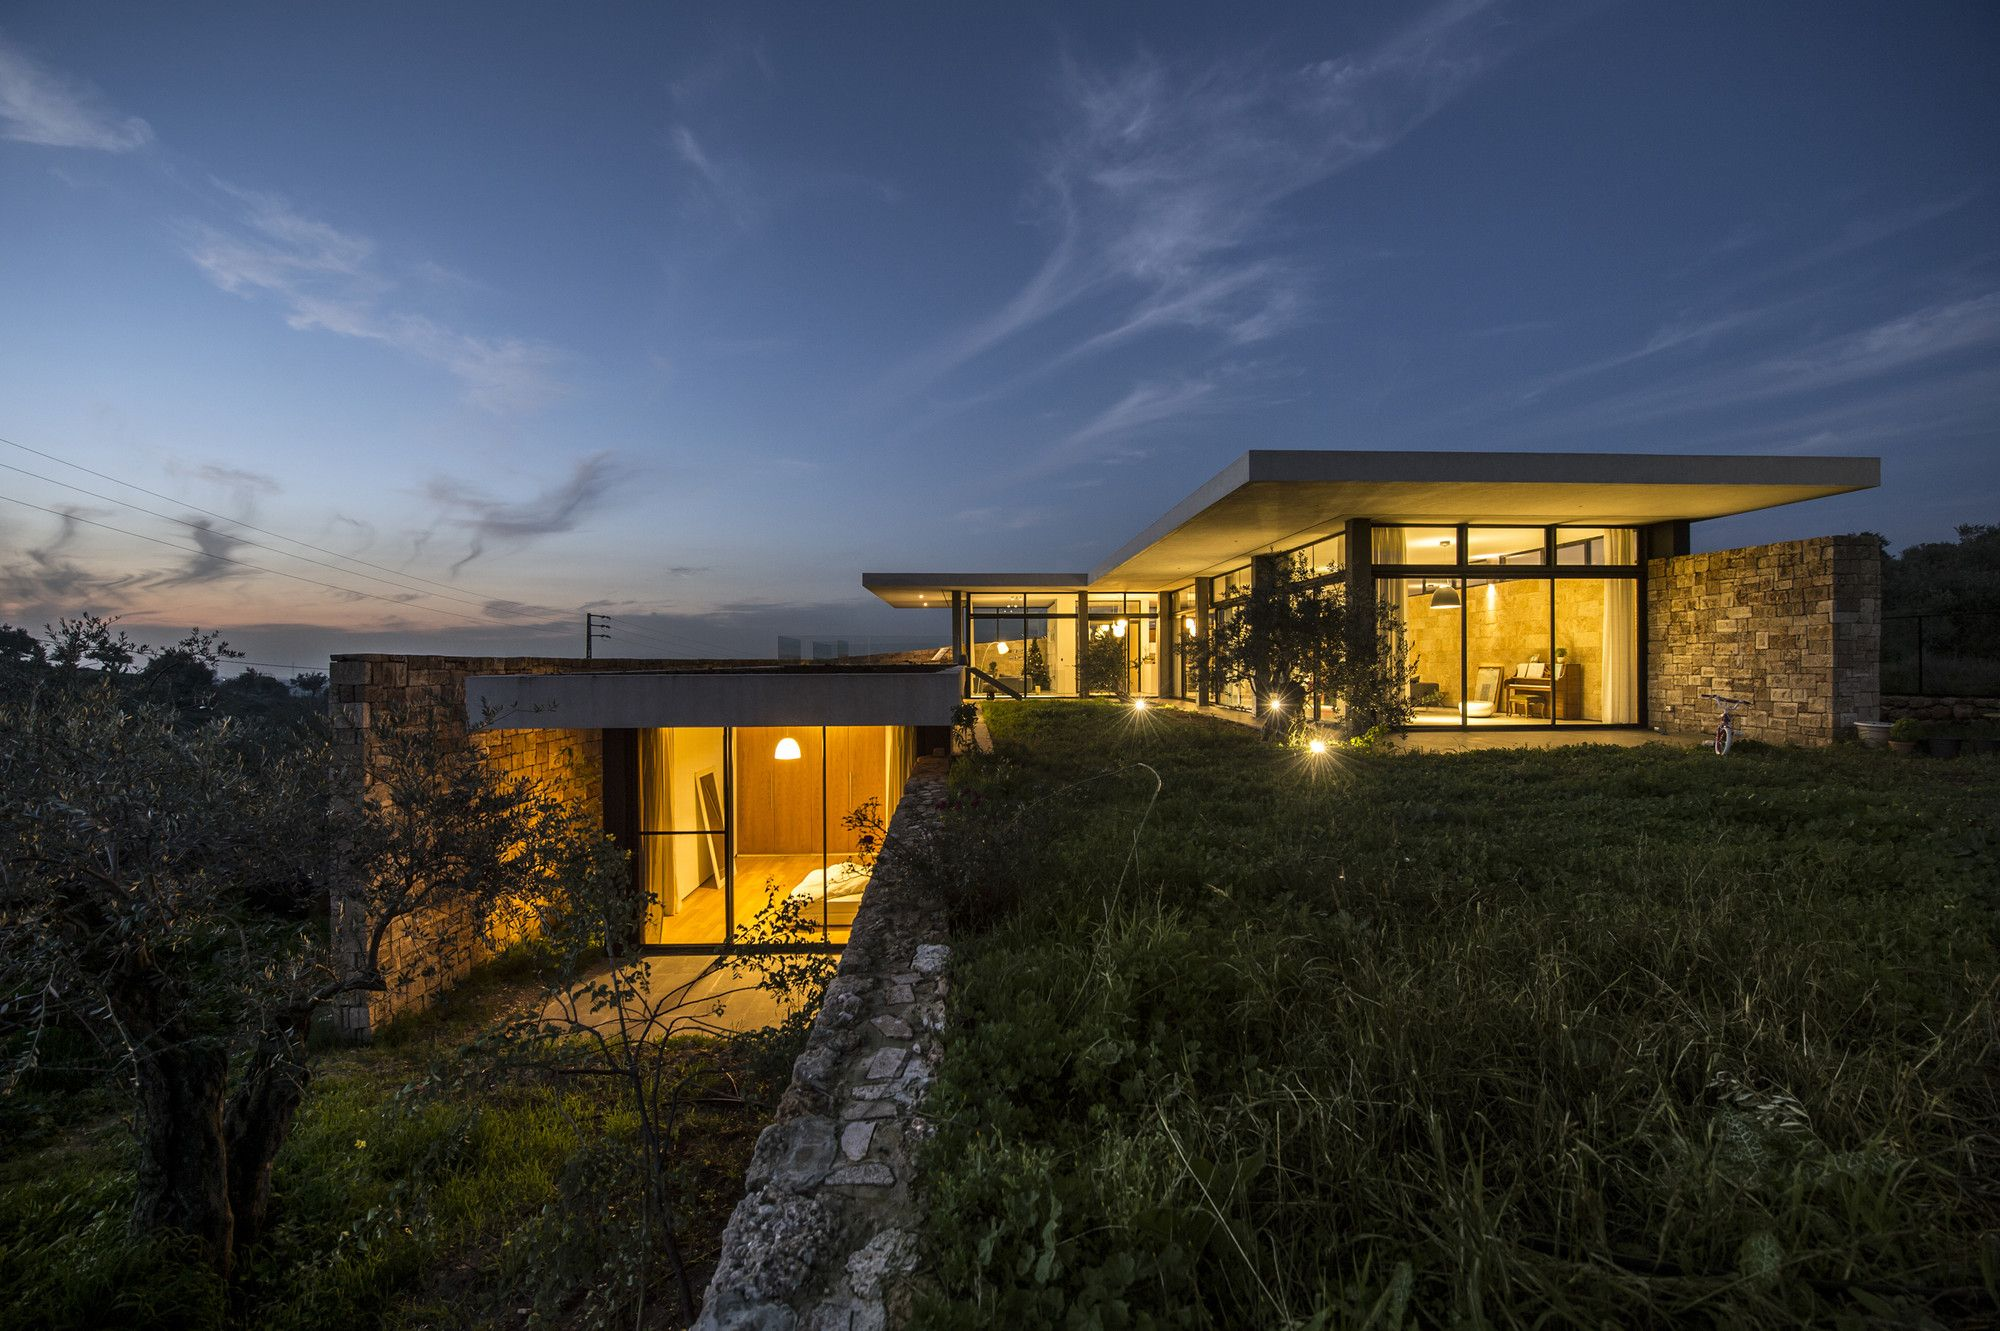 Gallery of Zgharta House platau 4 House Galleries and